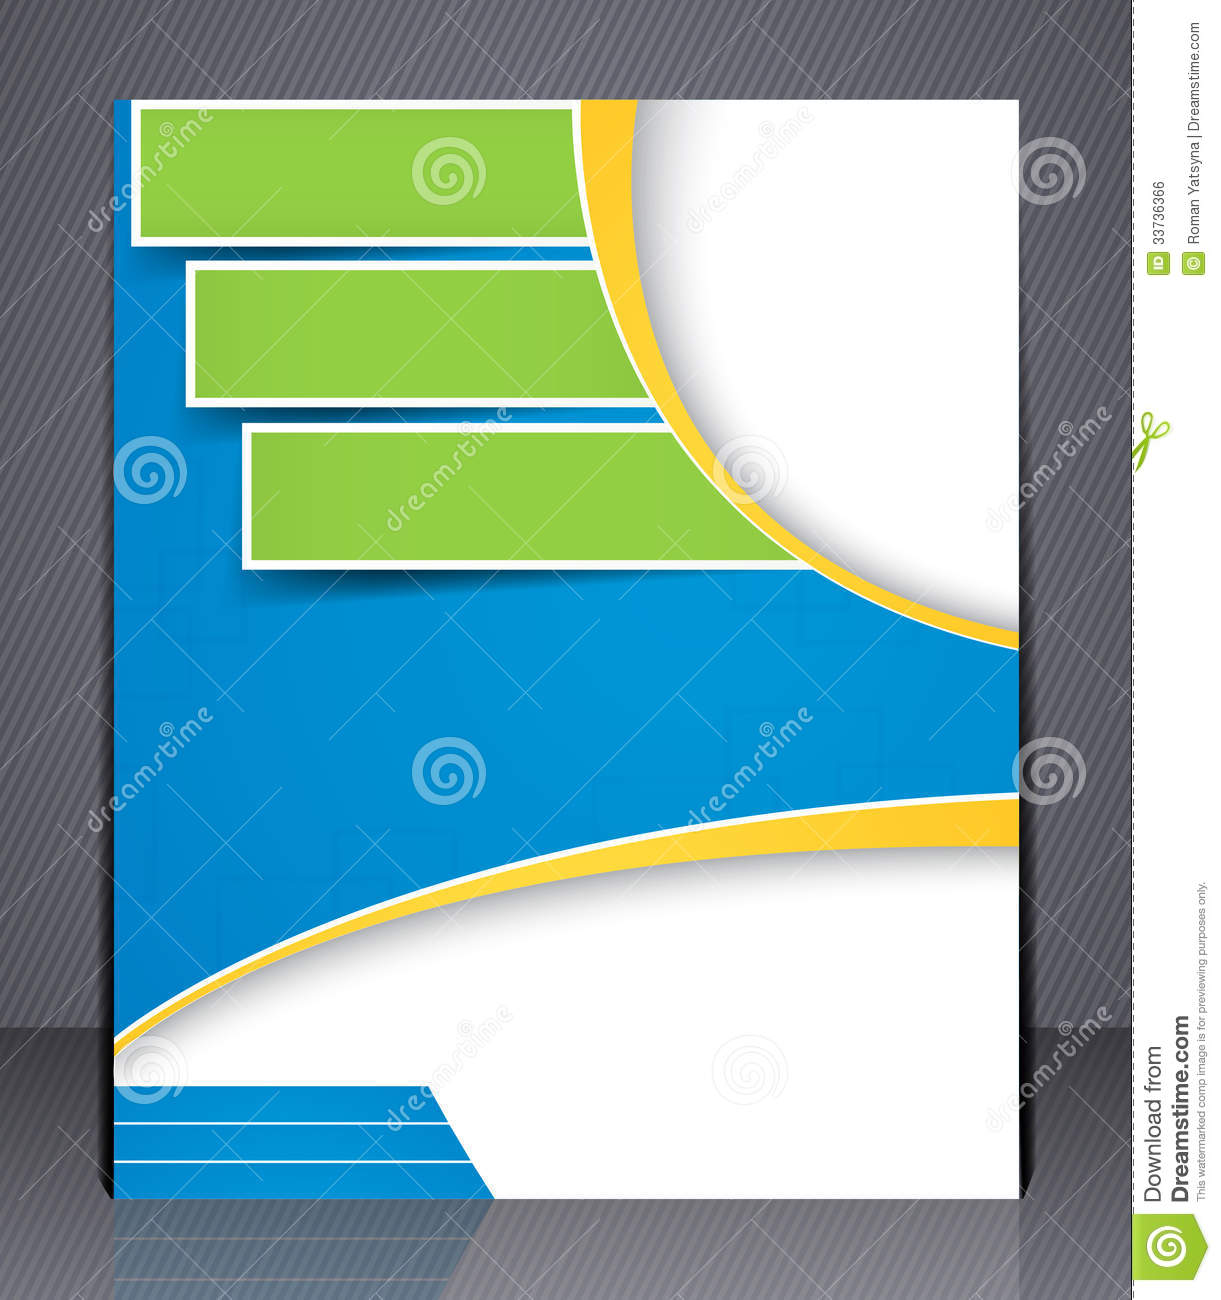 Layout business brochure template or magazine co stock vector layout business brochure template or magazine co download preview accmission Gallery